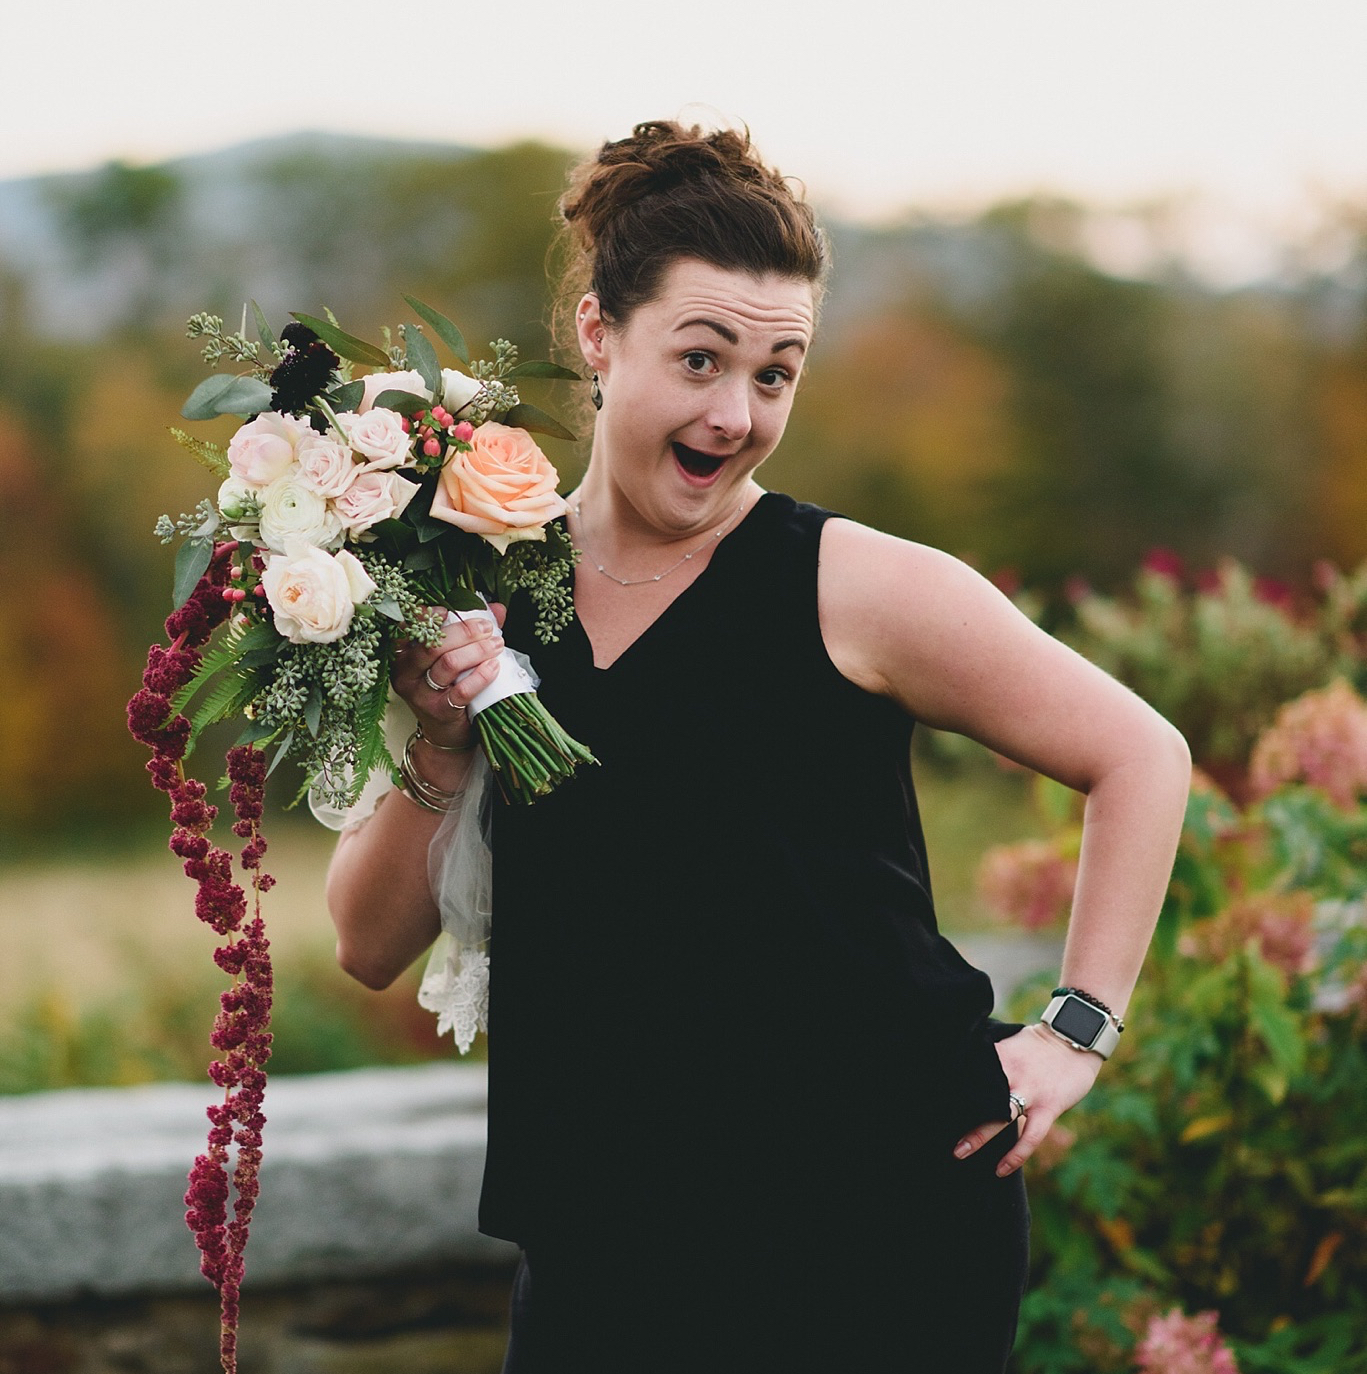 Lauren | LDC & Co. + Wedding Boss Life